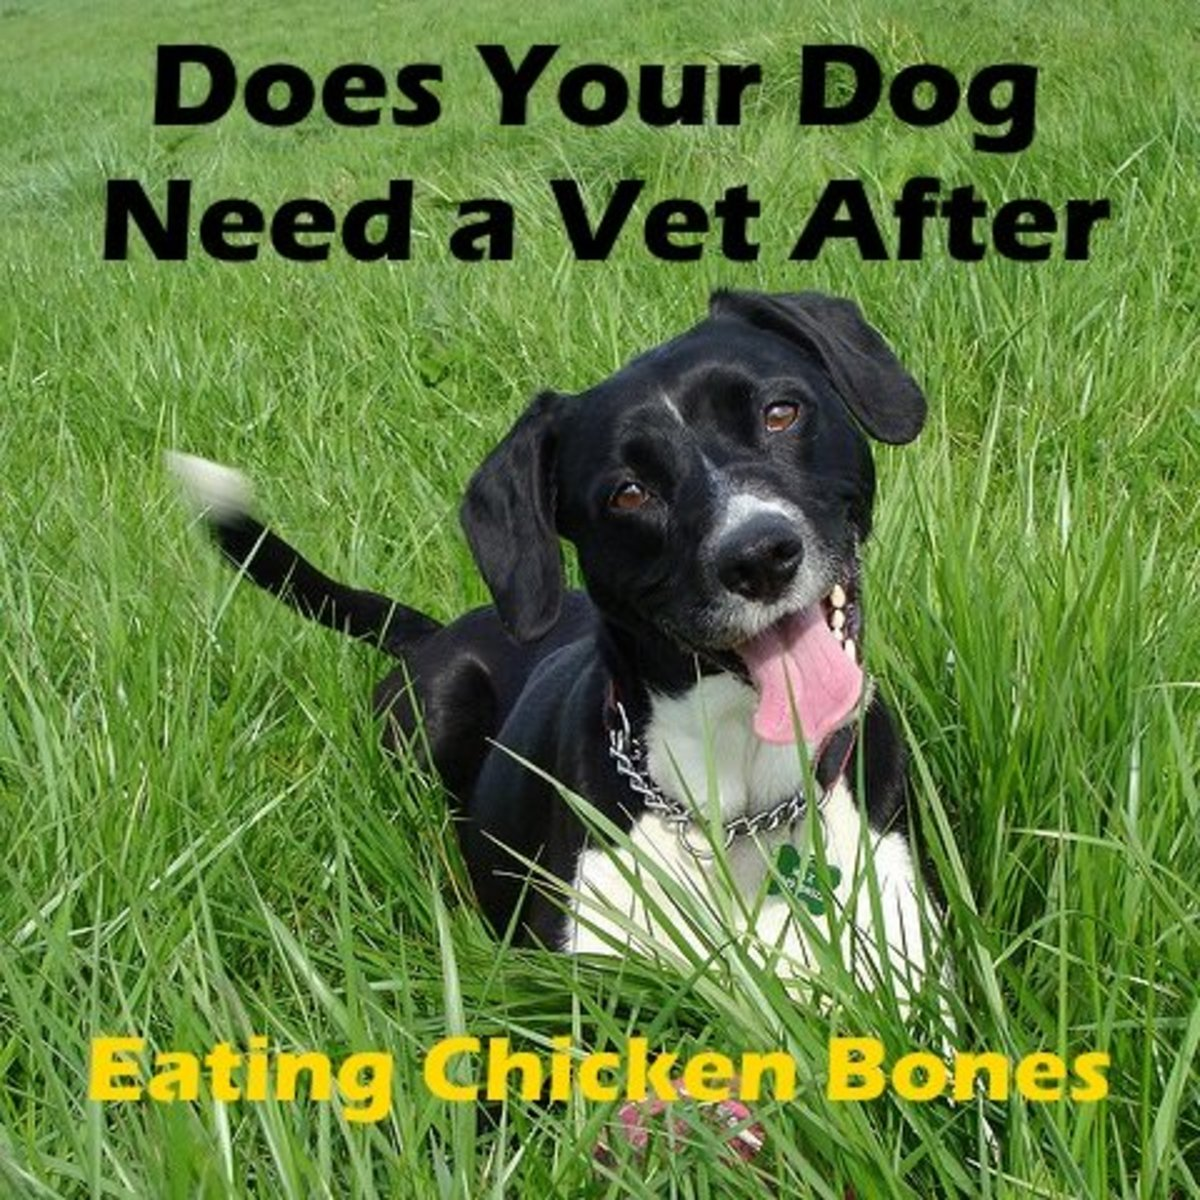 Does your dog need to go to the vet after eating chicken bones?